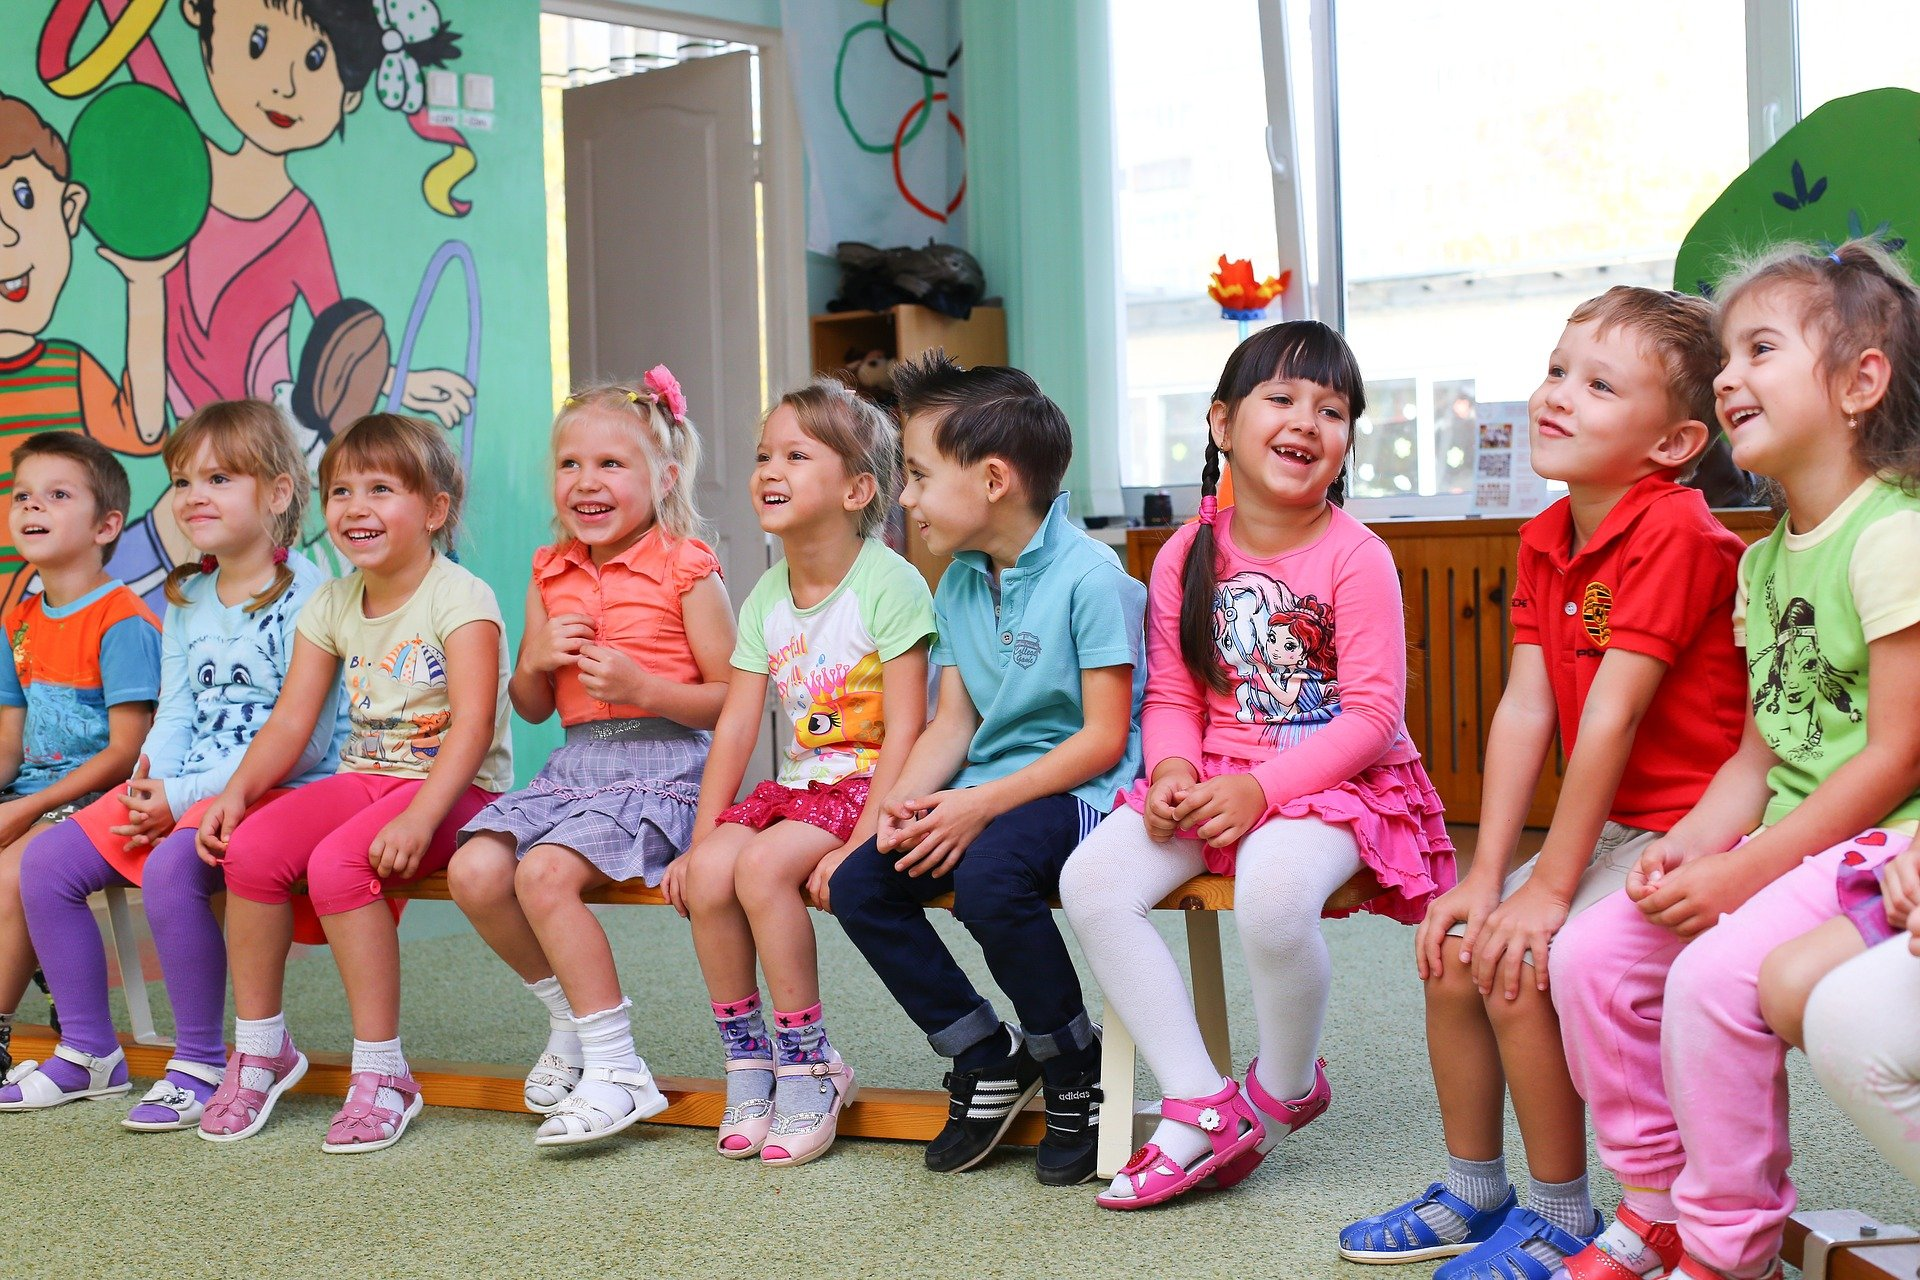 Nine kindergarten students sit in a row on wooden benches in a classroom.